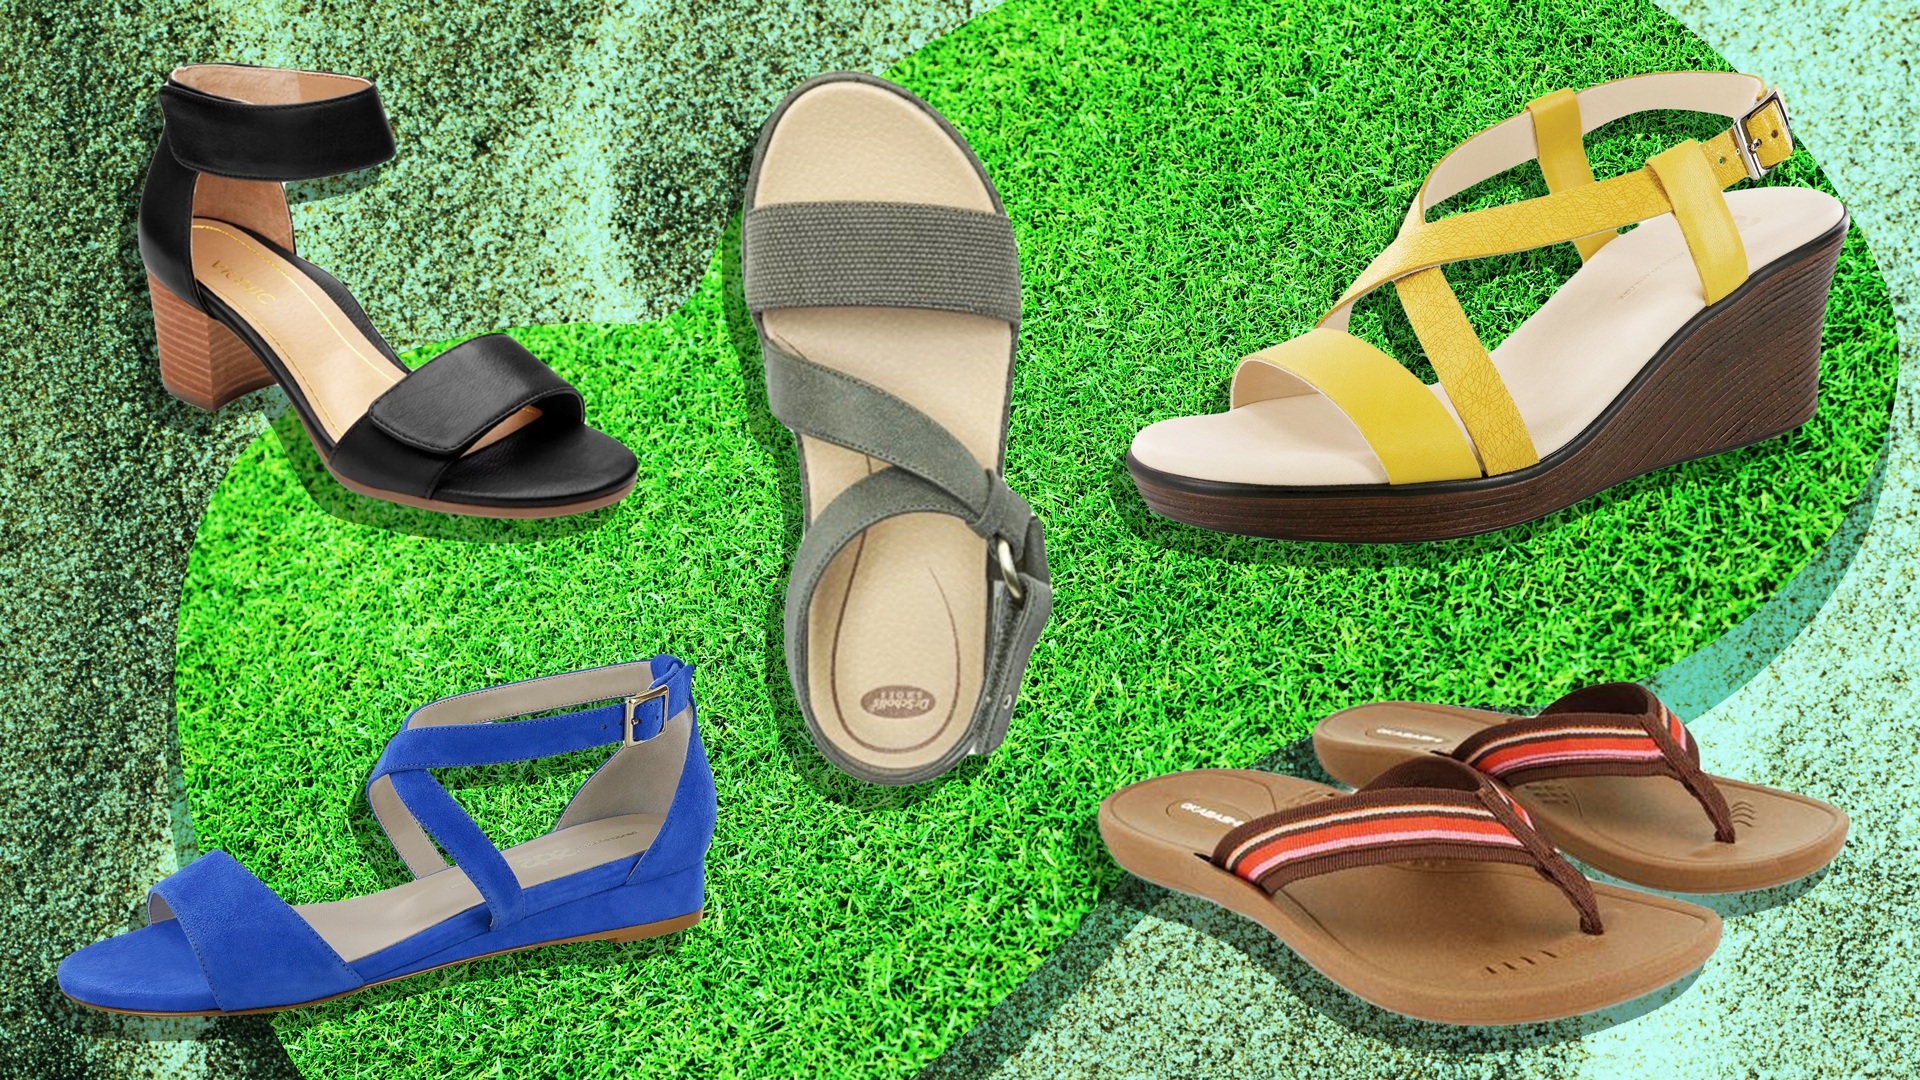 25713721f Podiatrists Tell Us How to Pick Sandals So Comfortable You Can Wear Them  All Day